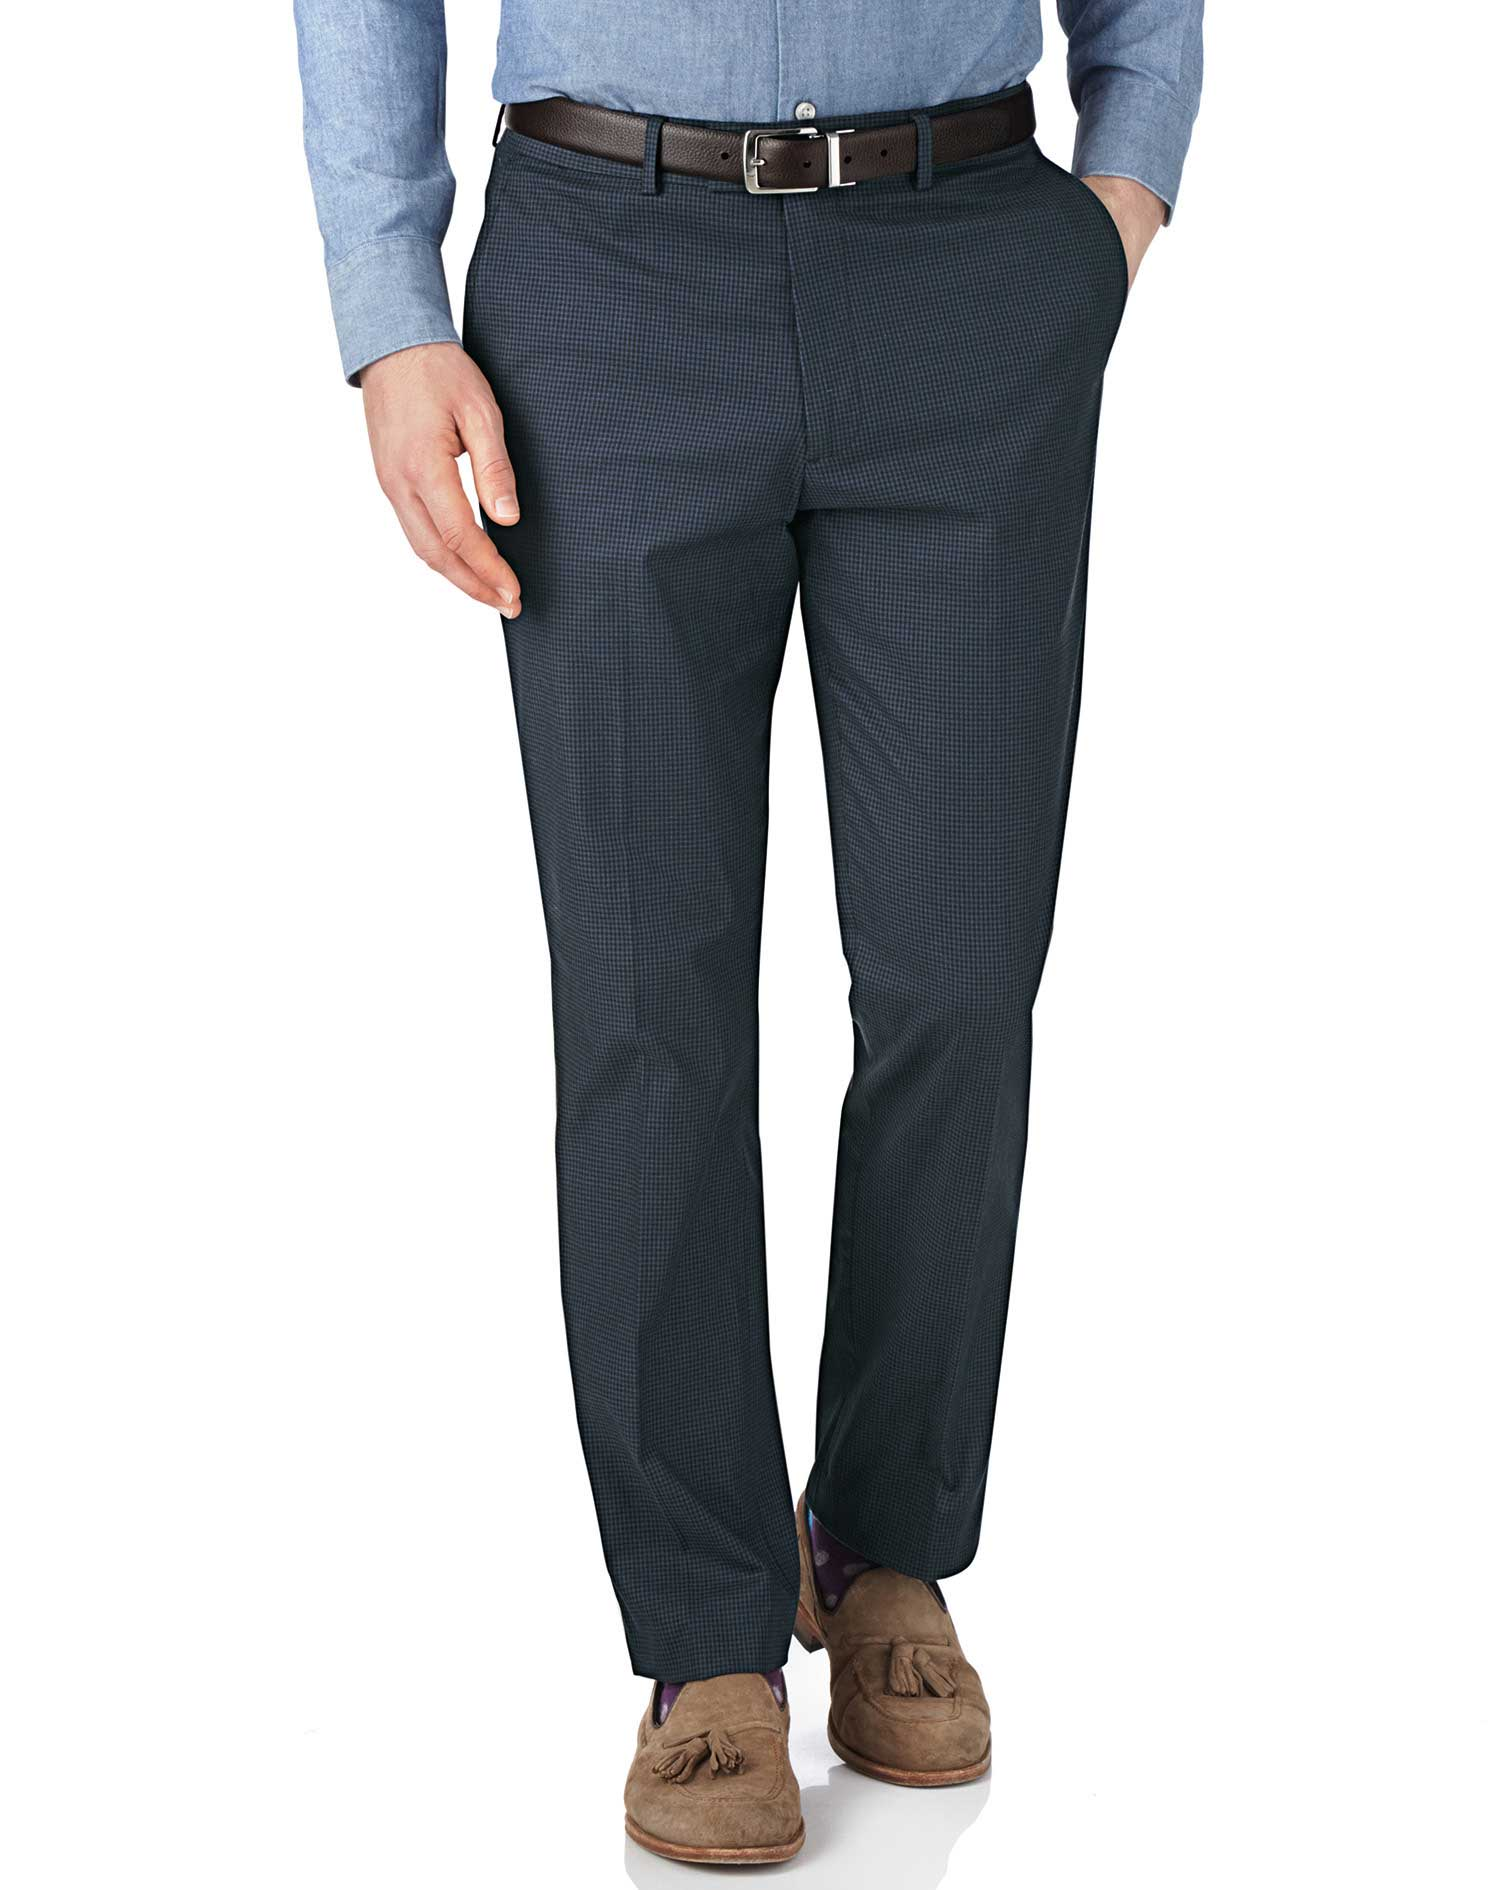 Navy and Blue Slim Fit Puppytooth Trousers Size W36 L32 by Charles Tyrwhitt